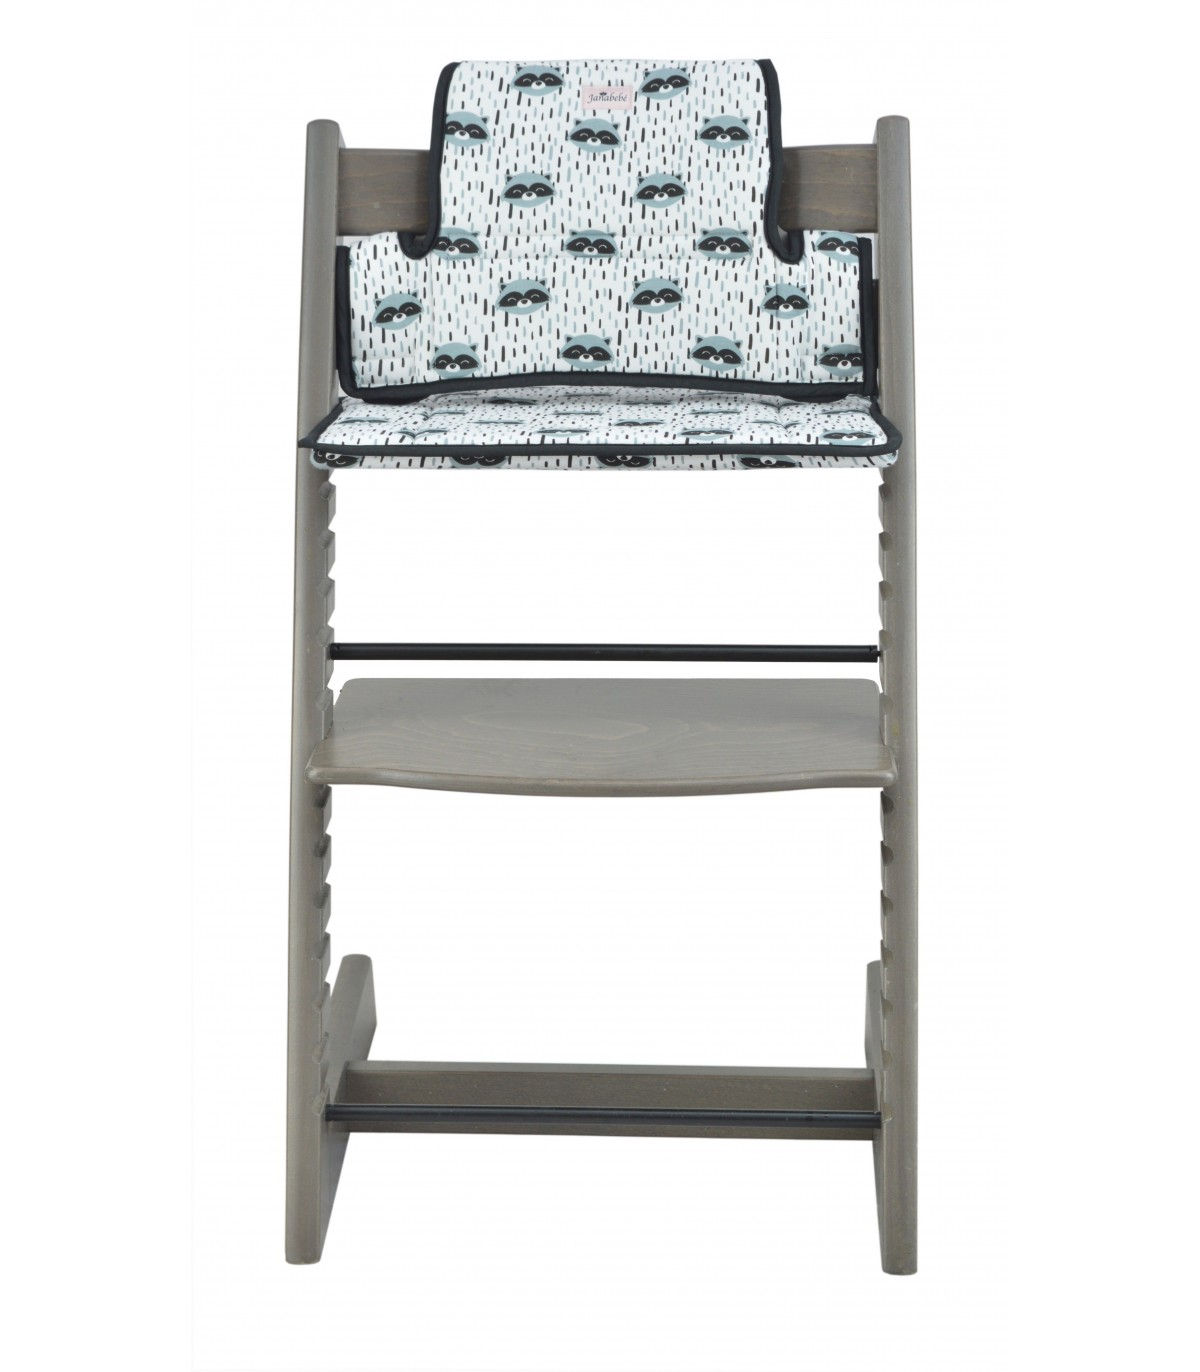 Pleasant Cushion For Stokke Highchair Janabebe Caraccident5 Cool Chair Designs And Ideas Caraccident5Info